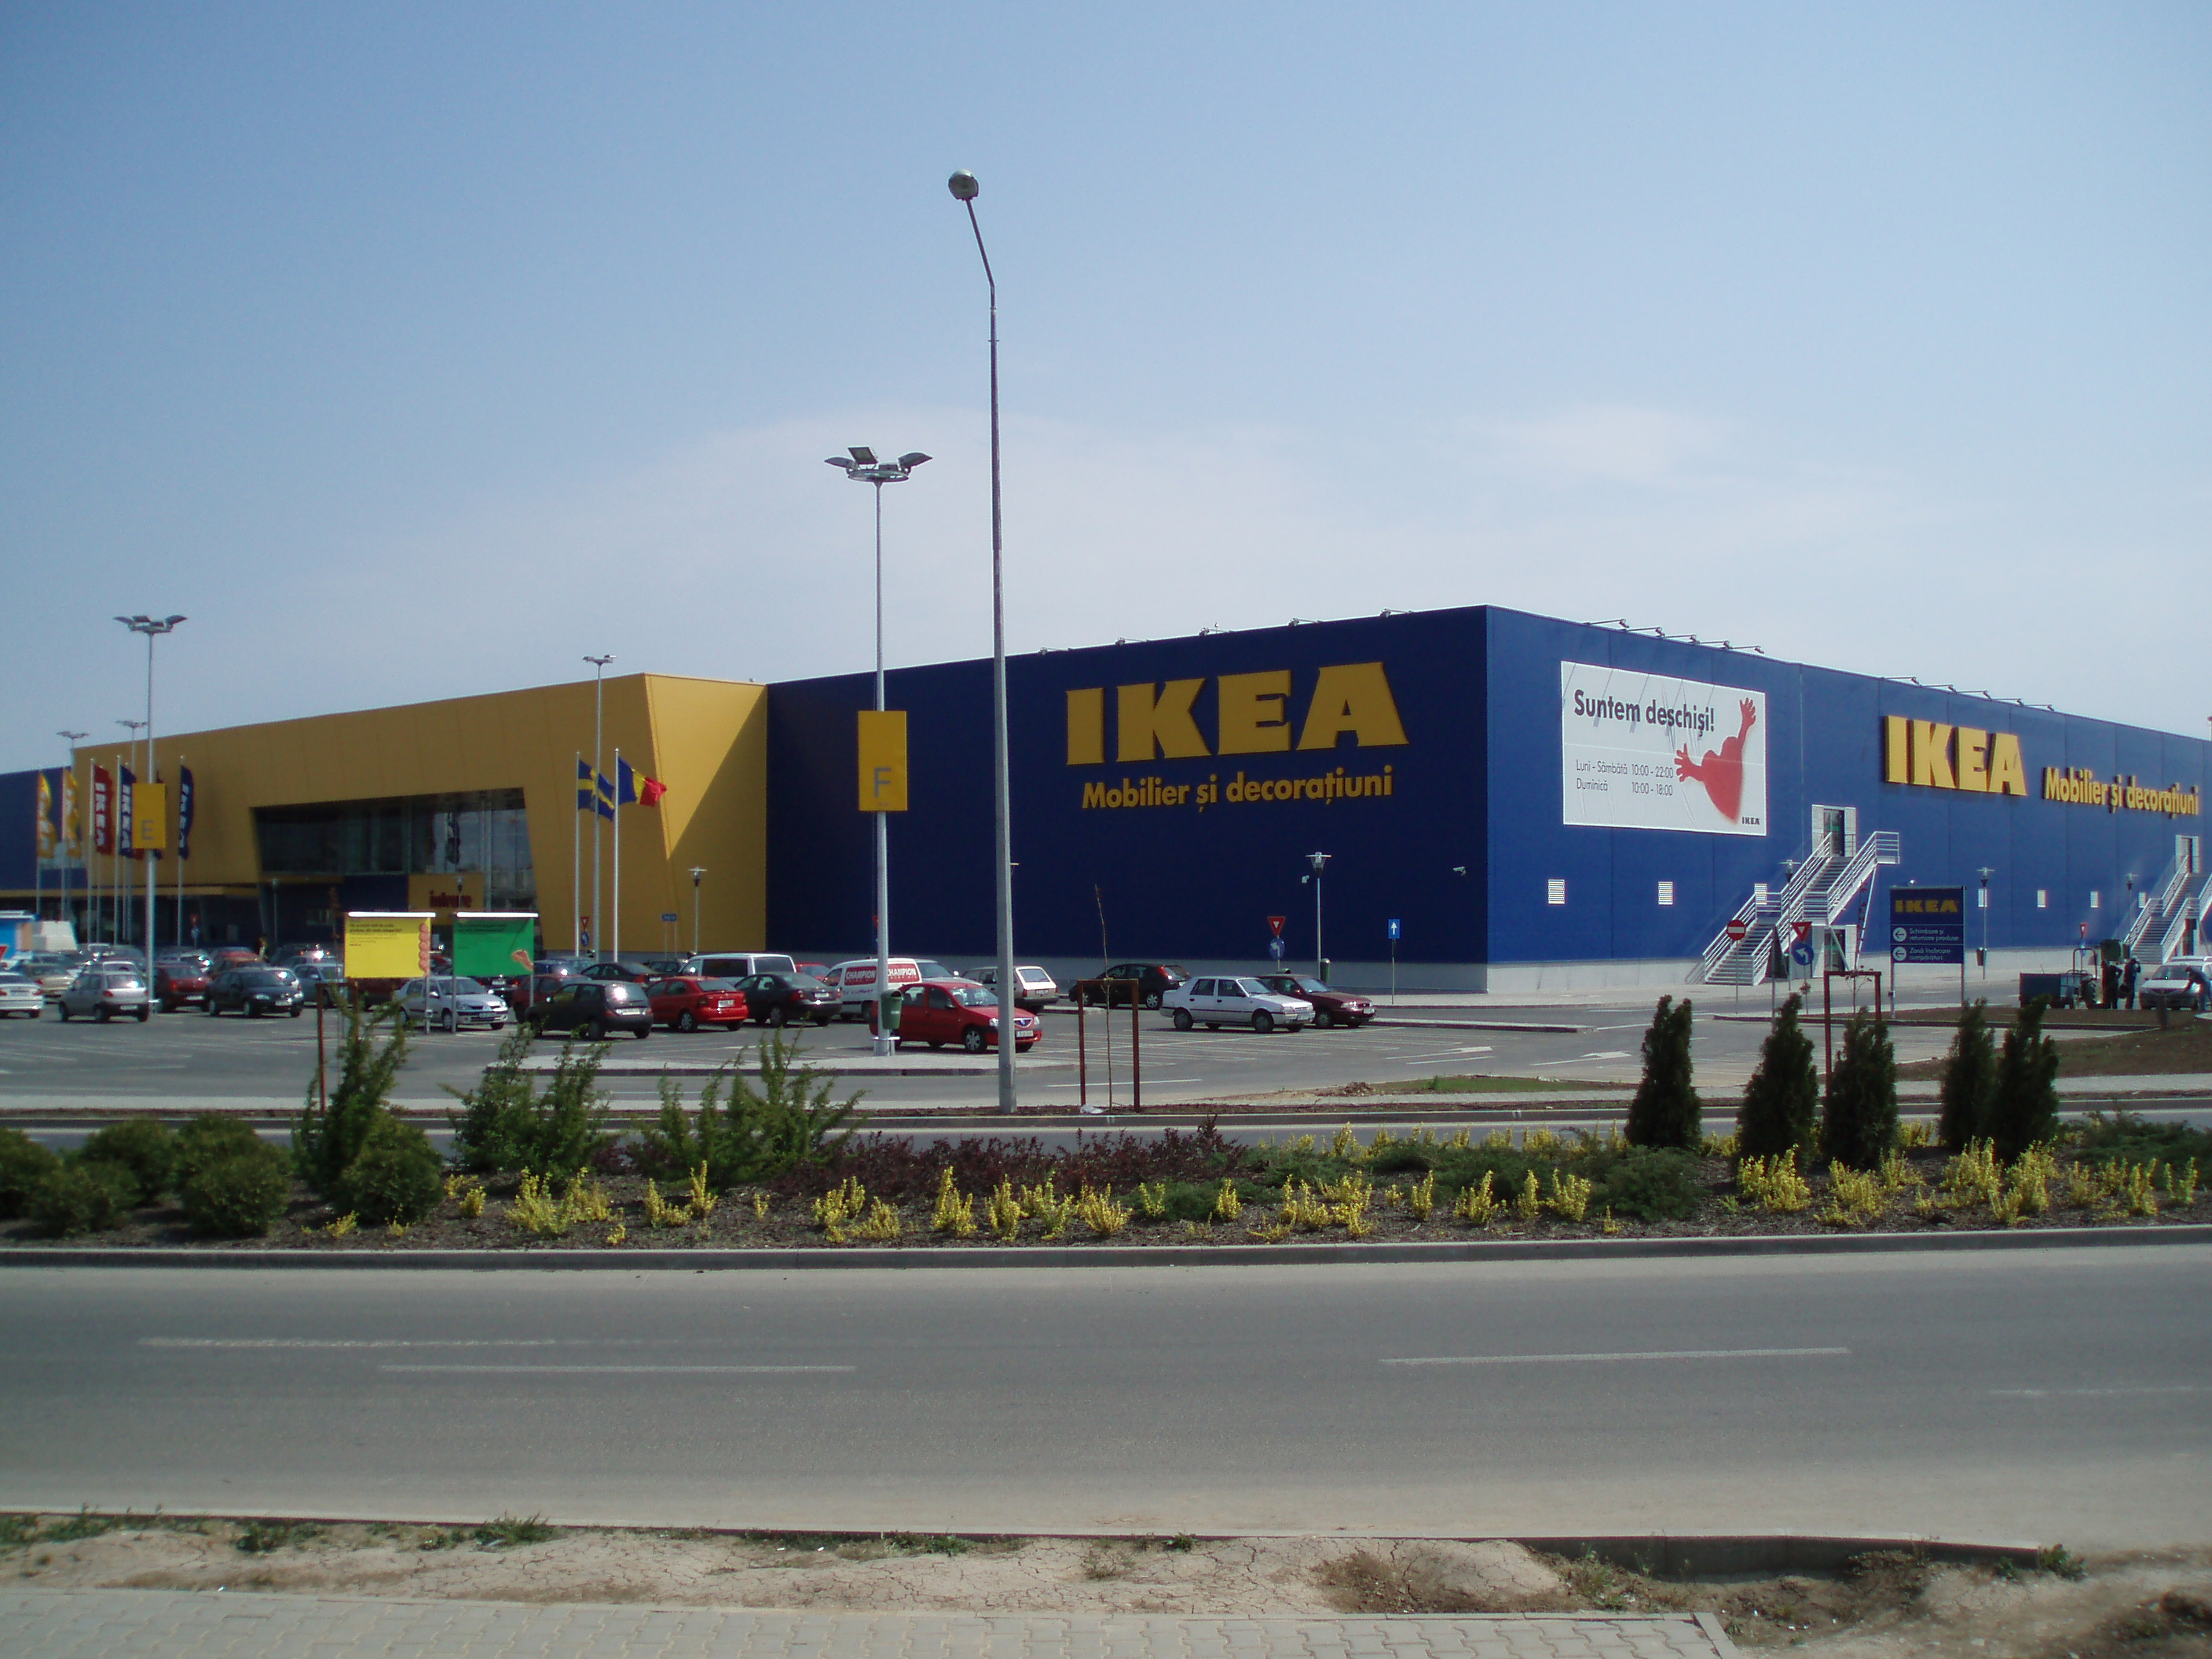 ikea store market hall depot conarg. Black Bedroom Furniture Sets. Home Design Ideas